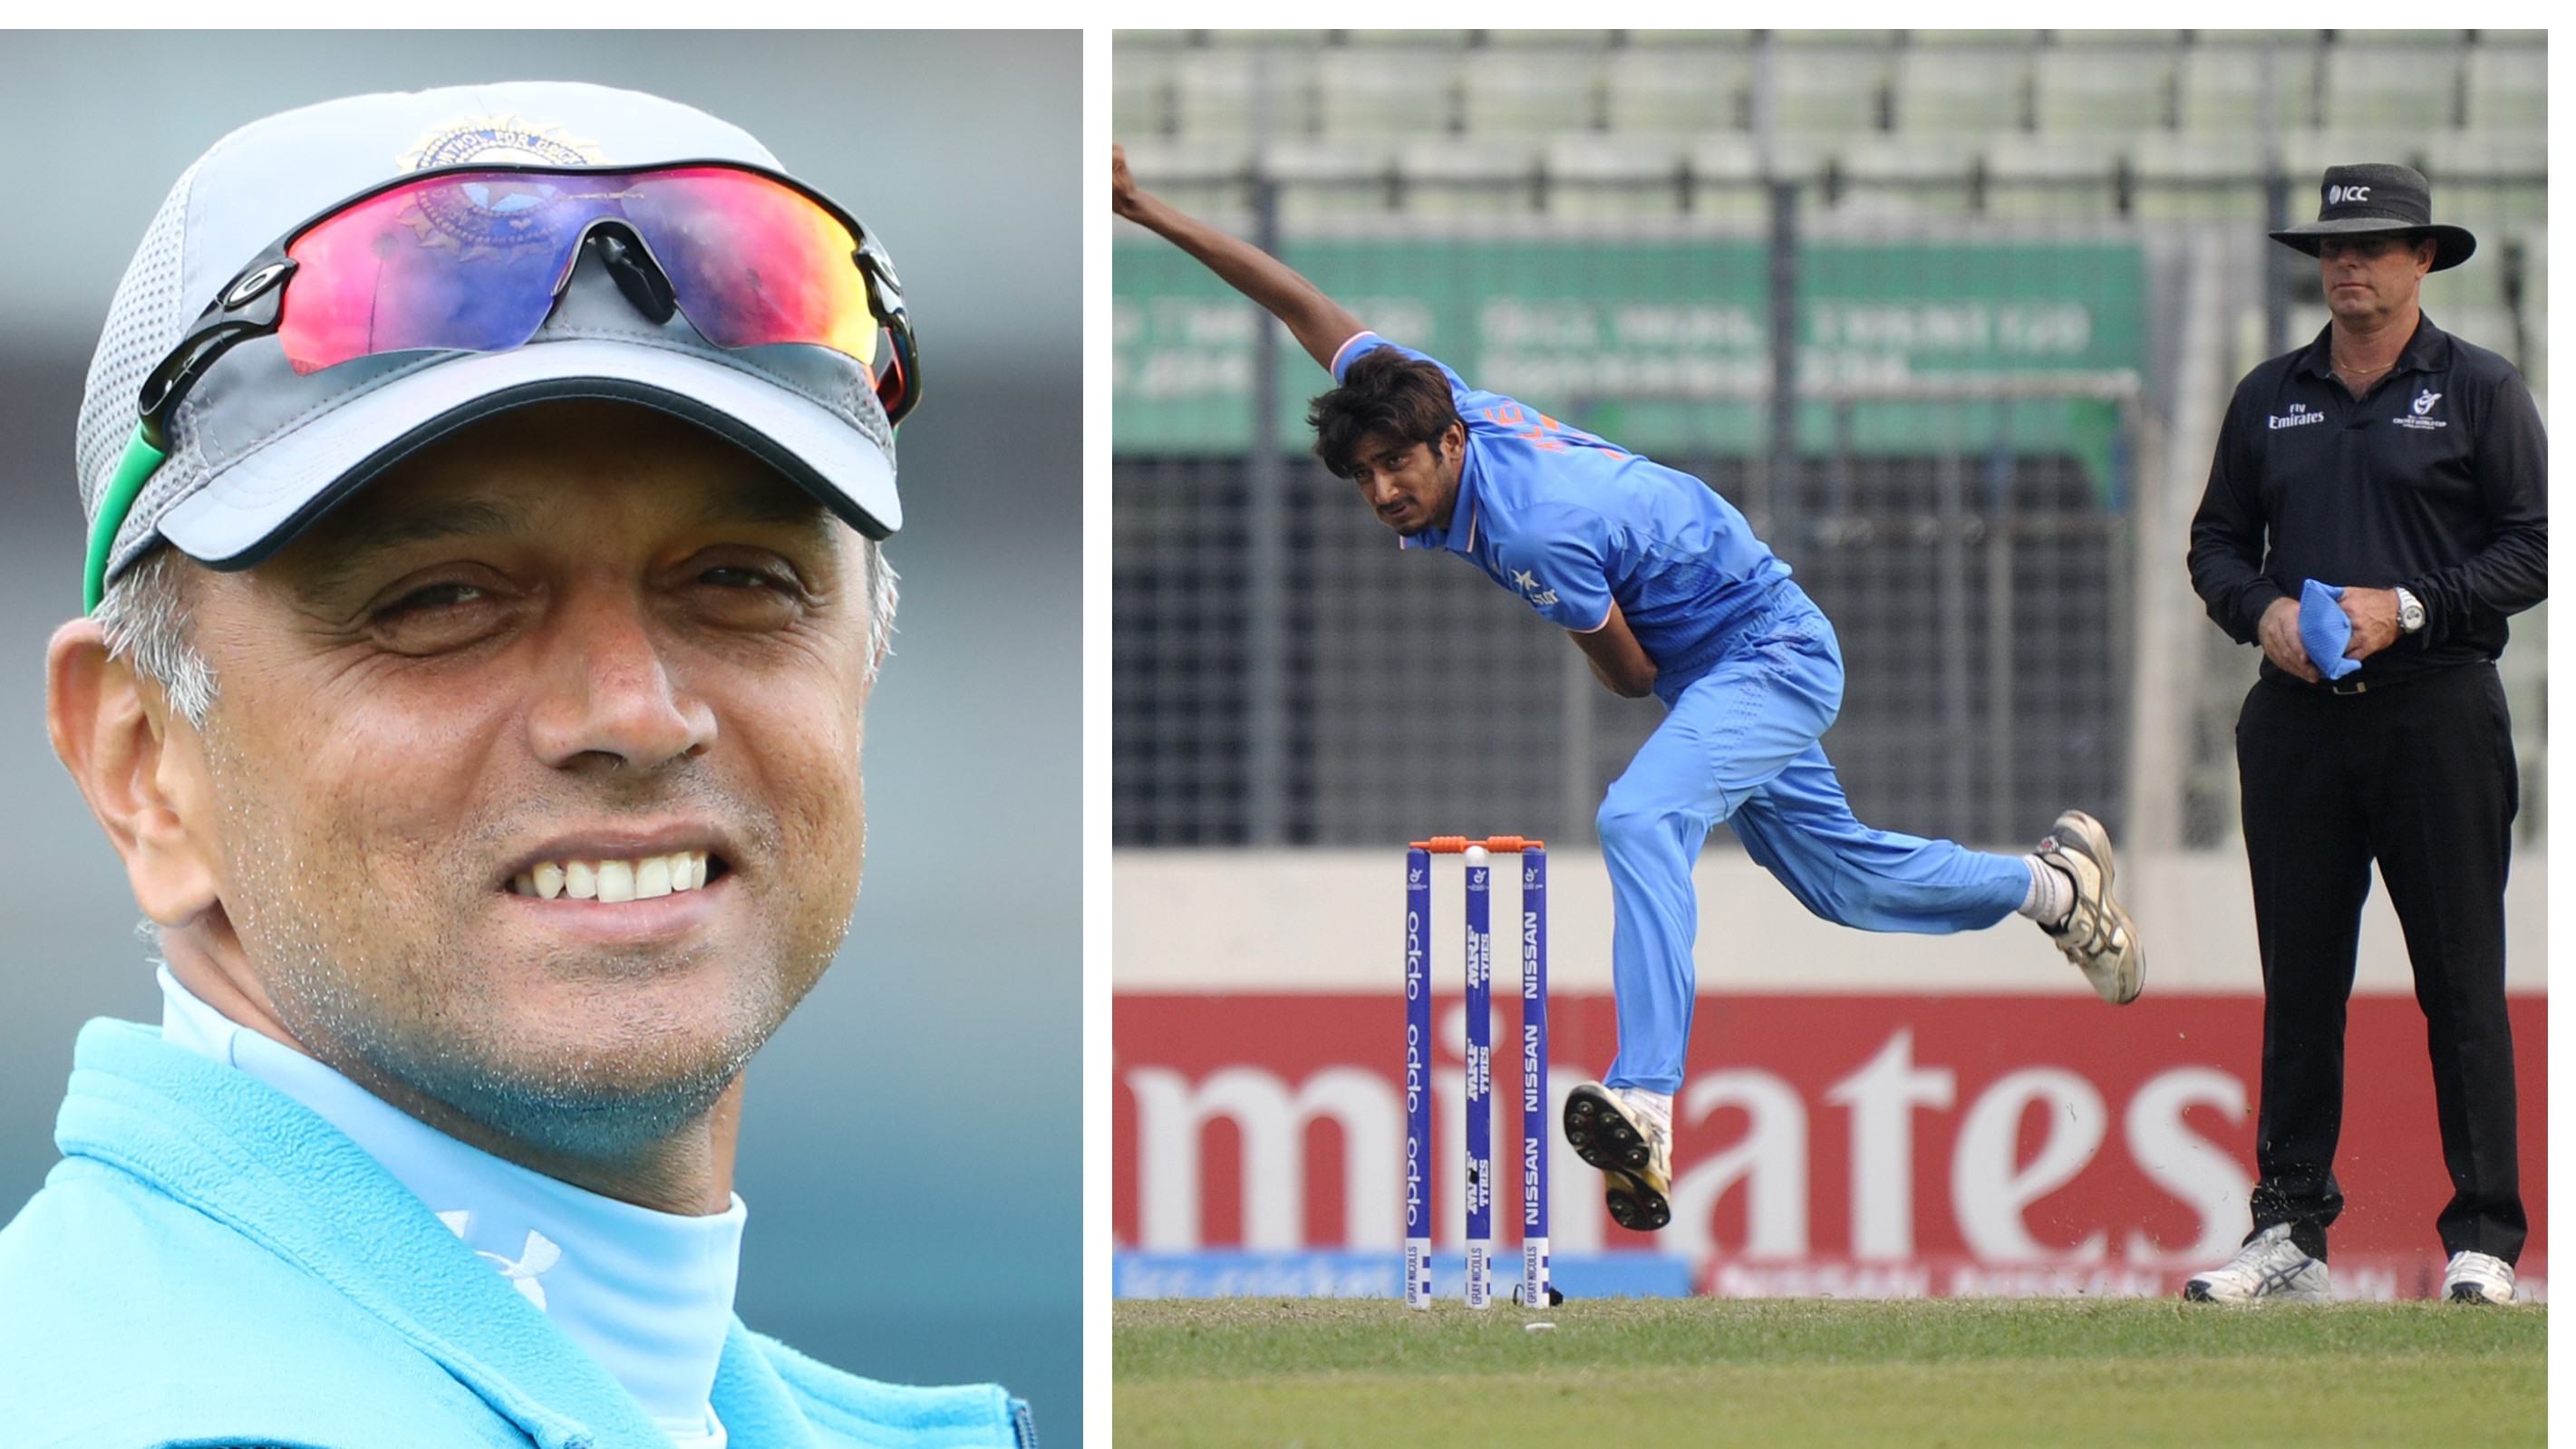 Asia Cup 2018: Rahul Dravid turned my career around, says Khaleel Ahmed